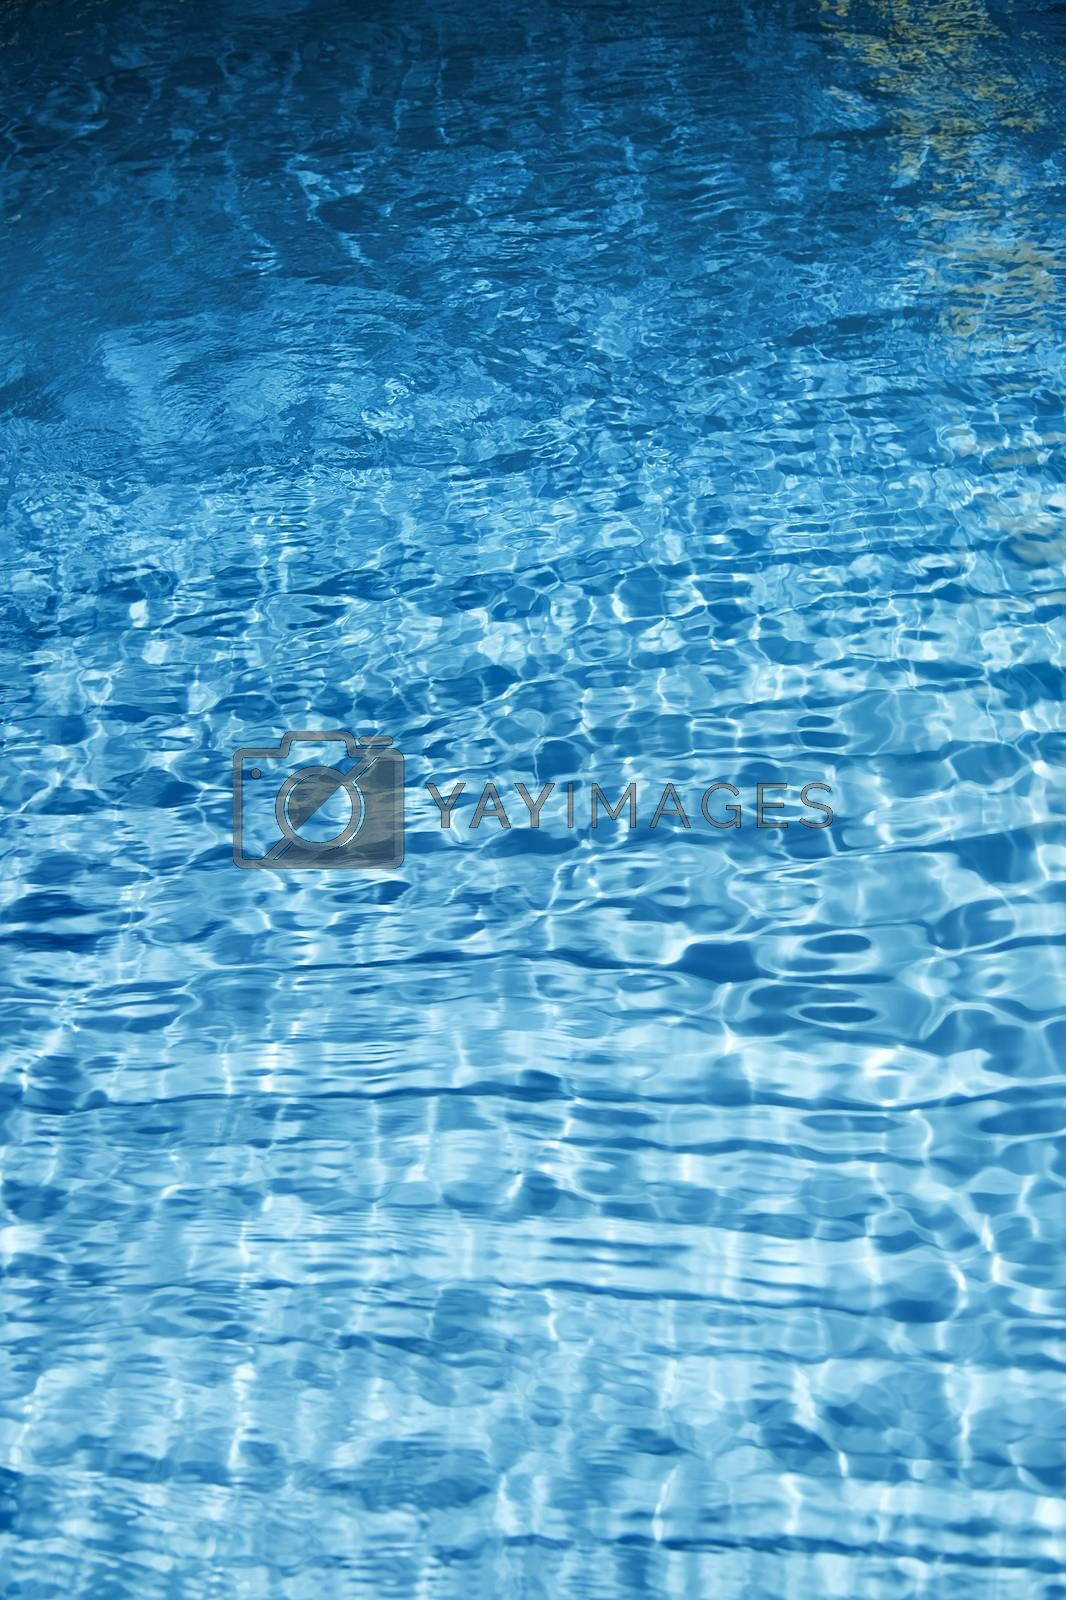 Texture of blue water. Vertical photo